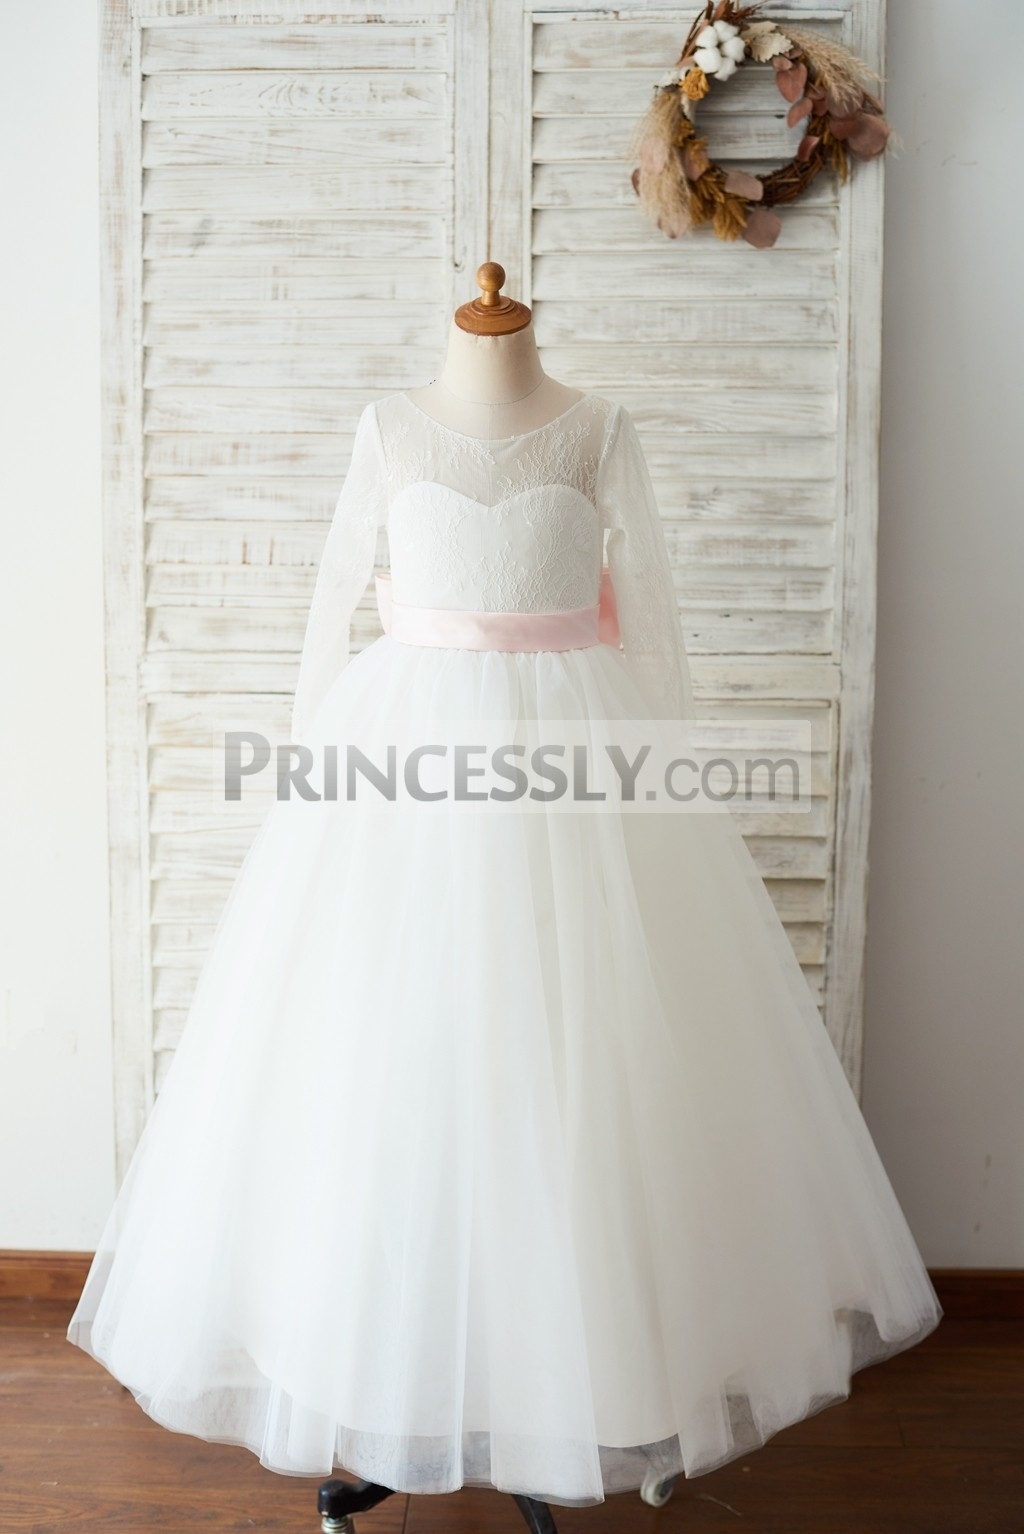 Sheer neck inside sweetheart lace tulle ivory wedding flower girl gown